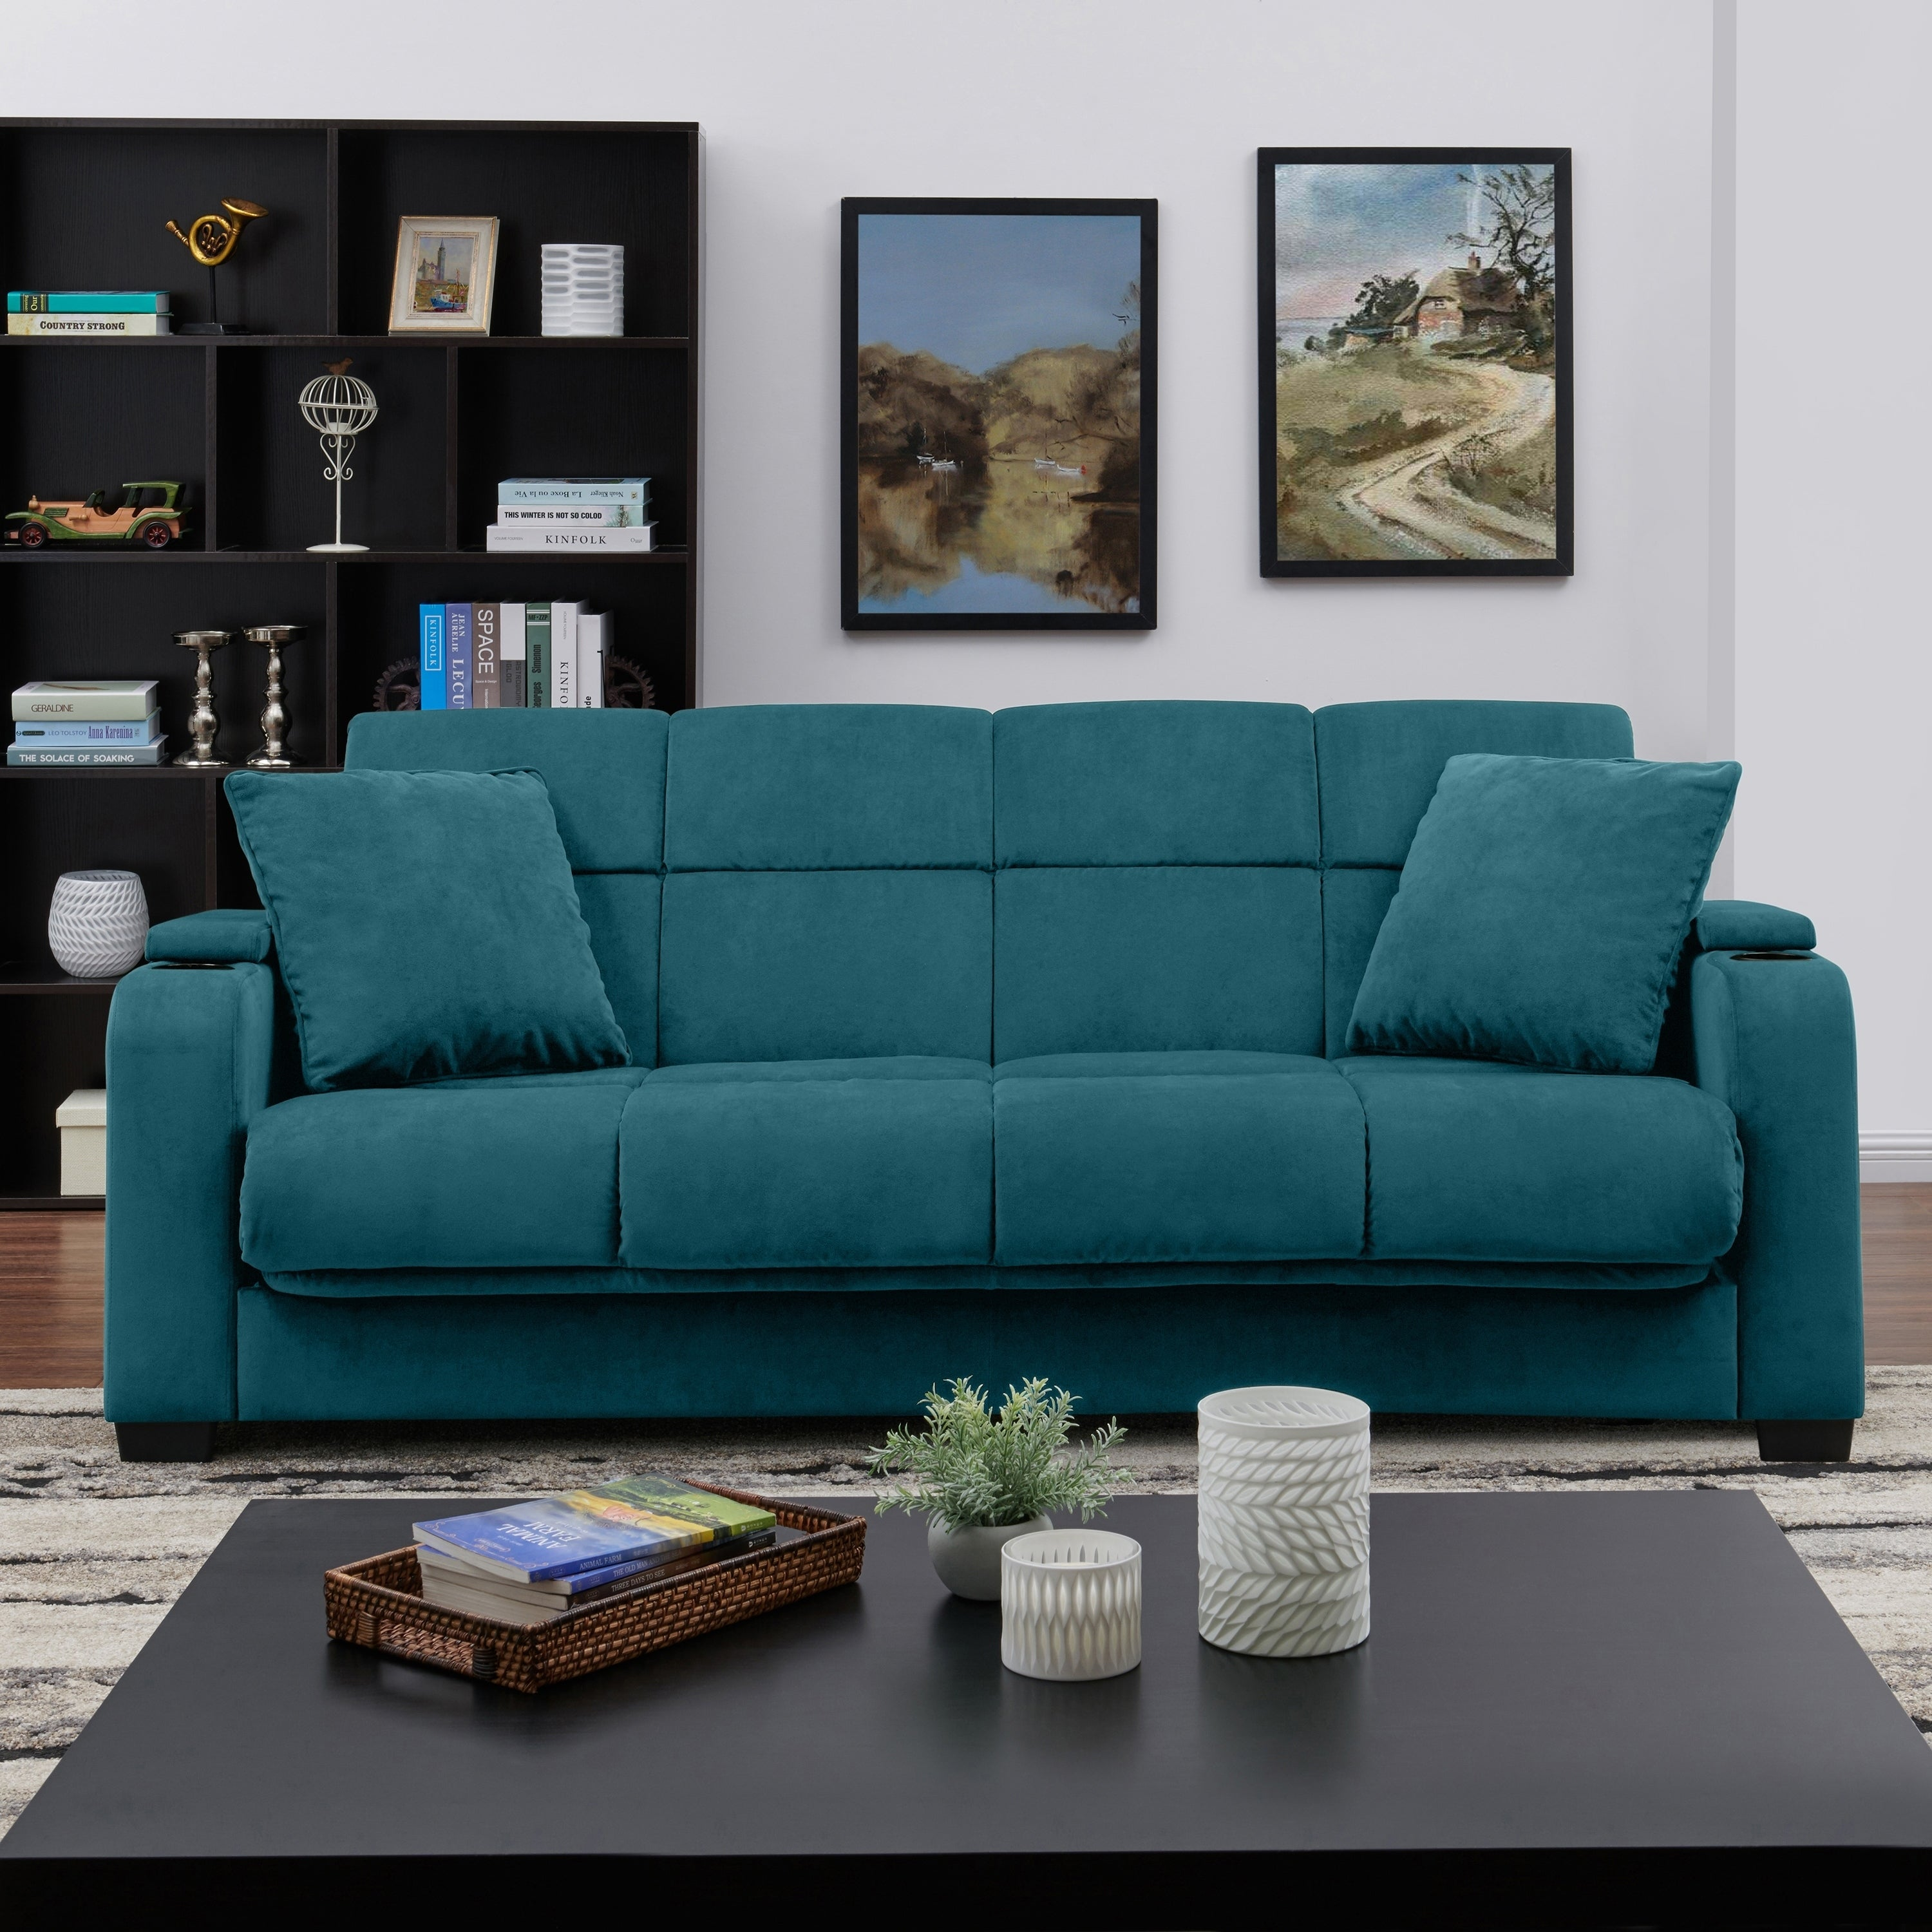 Handy Living Sophia Storage Arm Convert-a-Couch Sleeper Sofa